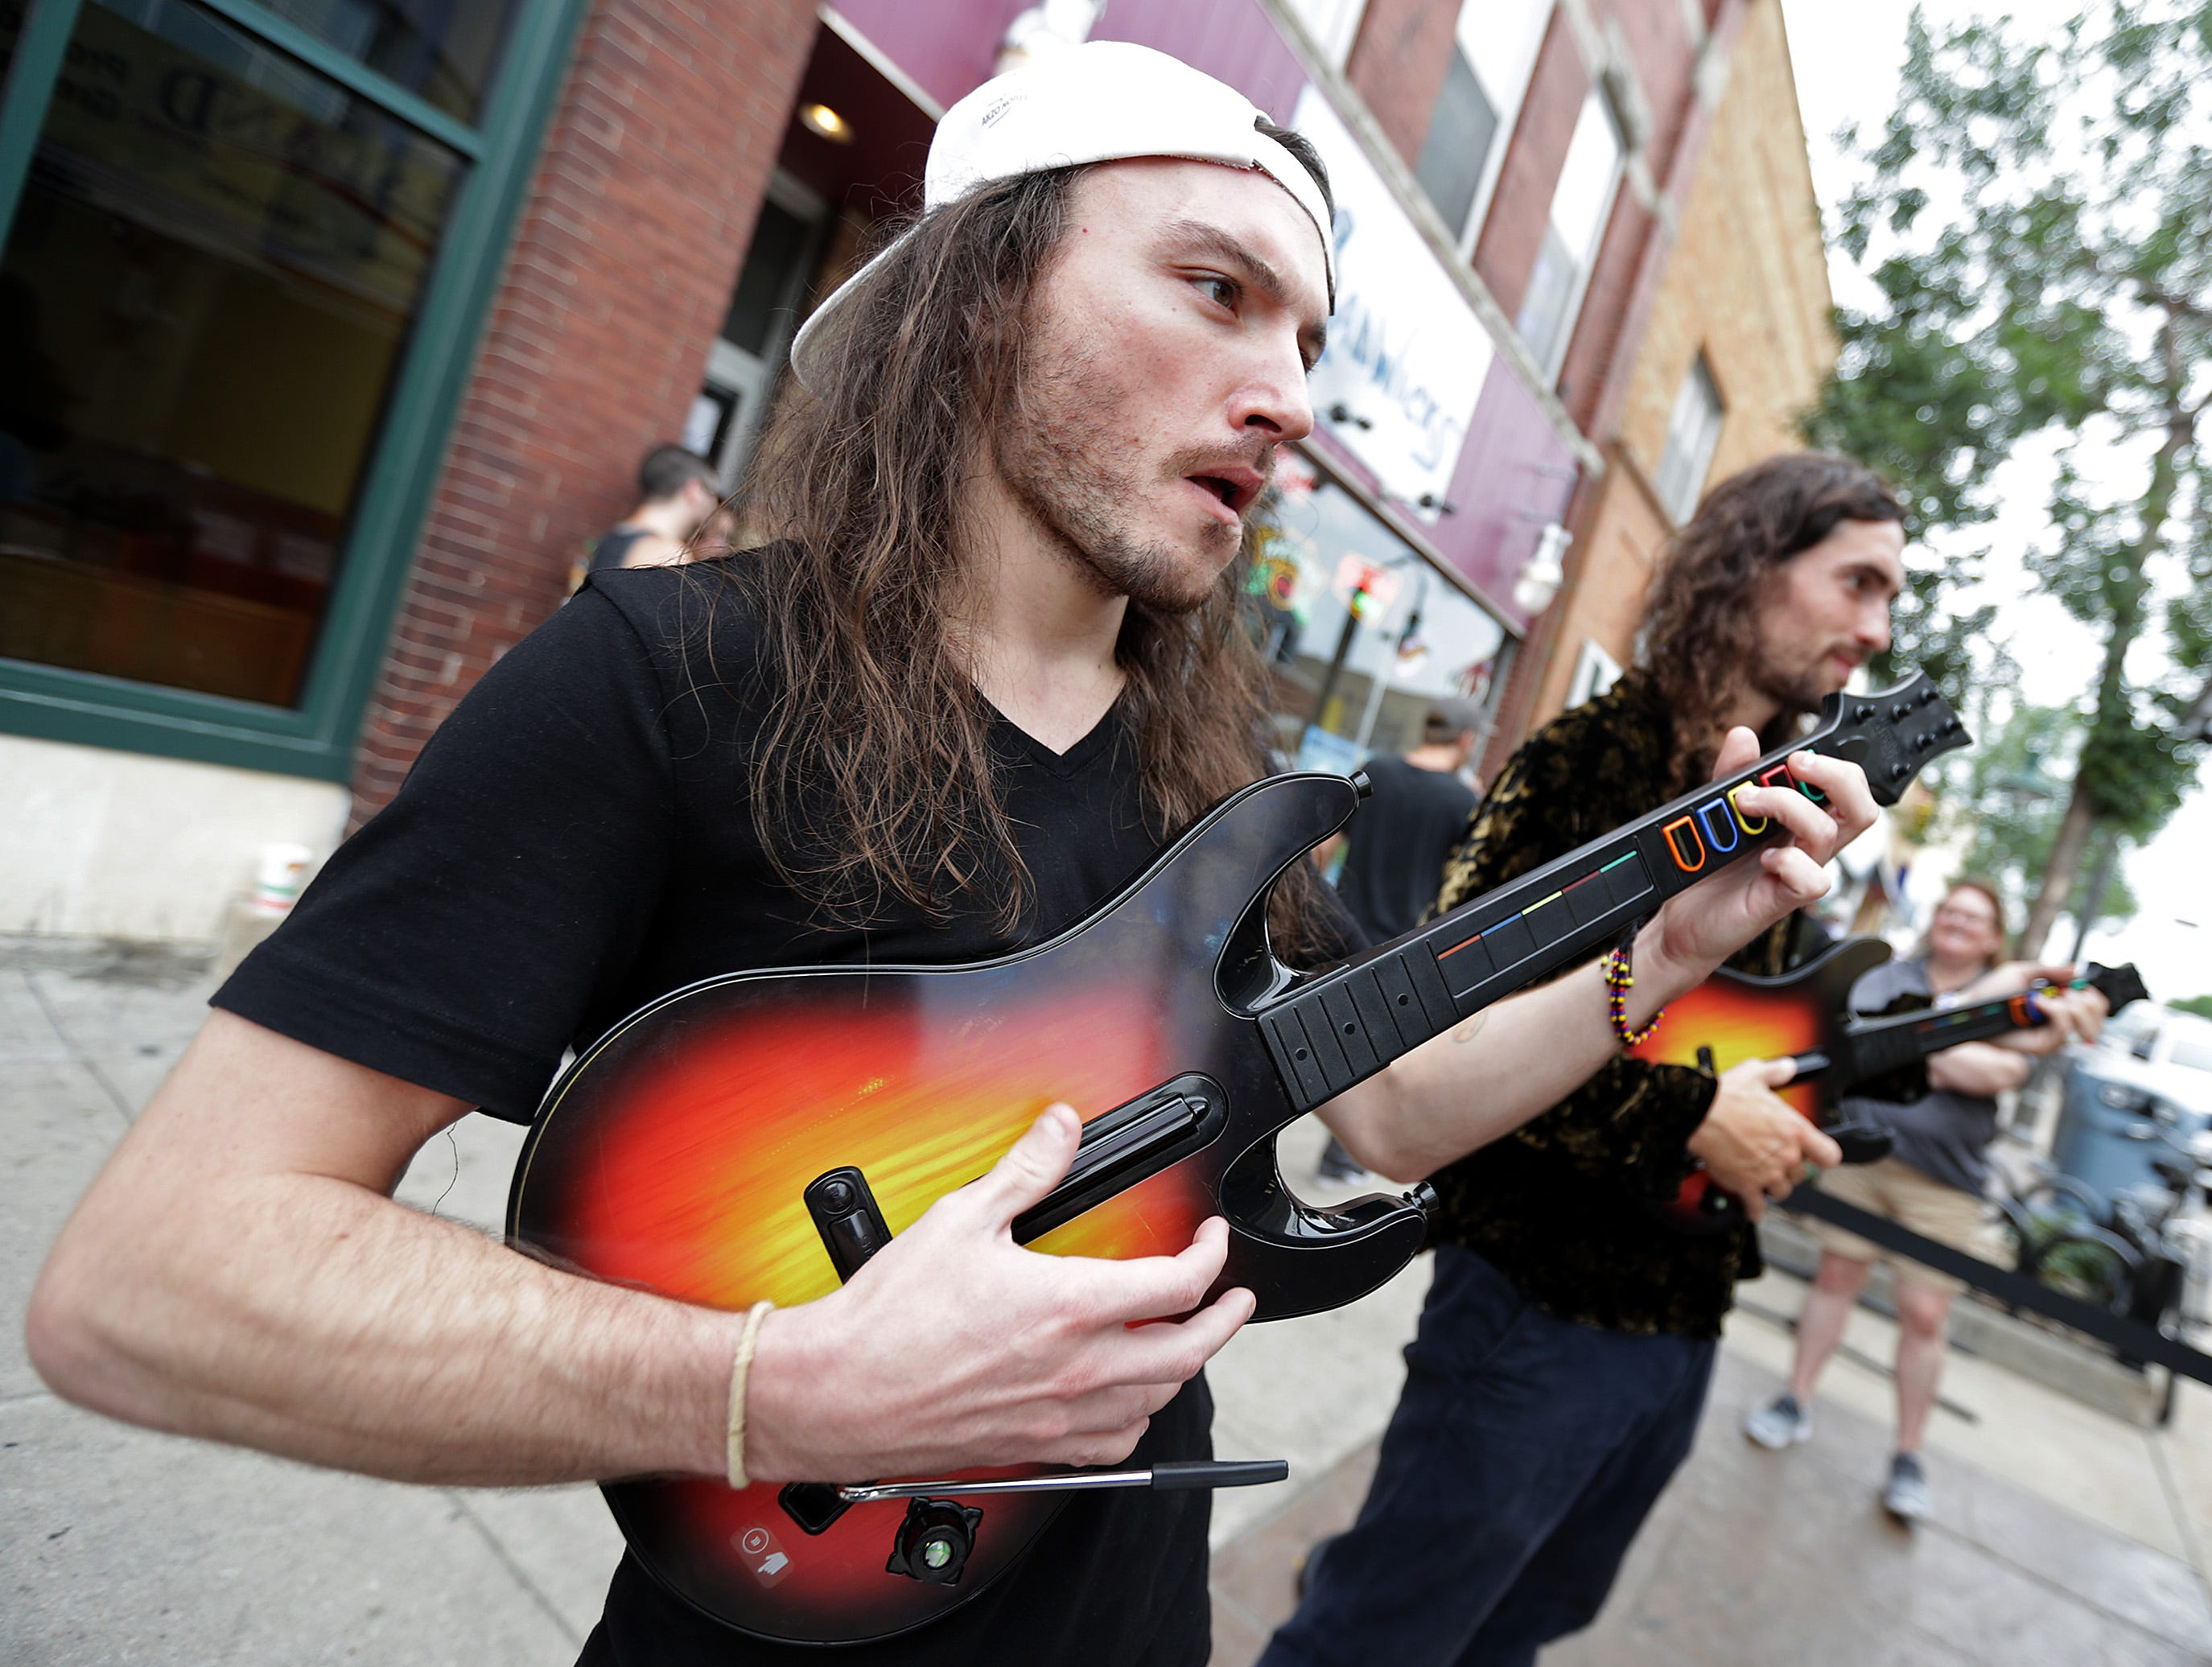 Cameron Clark, left, and James Weishar, from the band C2 and The Brothers Reed, stop to play sidewalk Rockband during the Mile of Music festival Friday, August 3, 2018, in Appleton, Wis. 